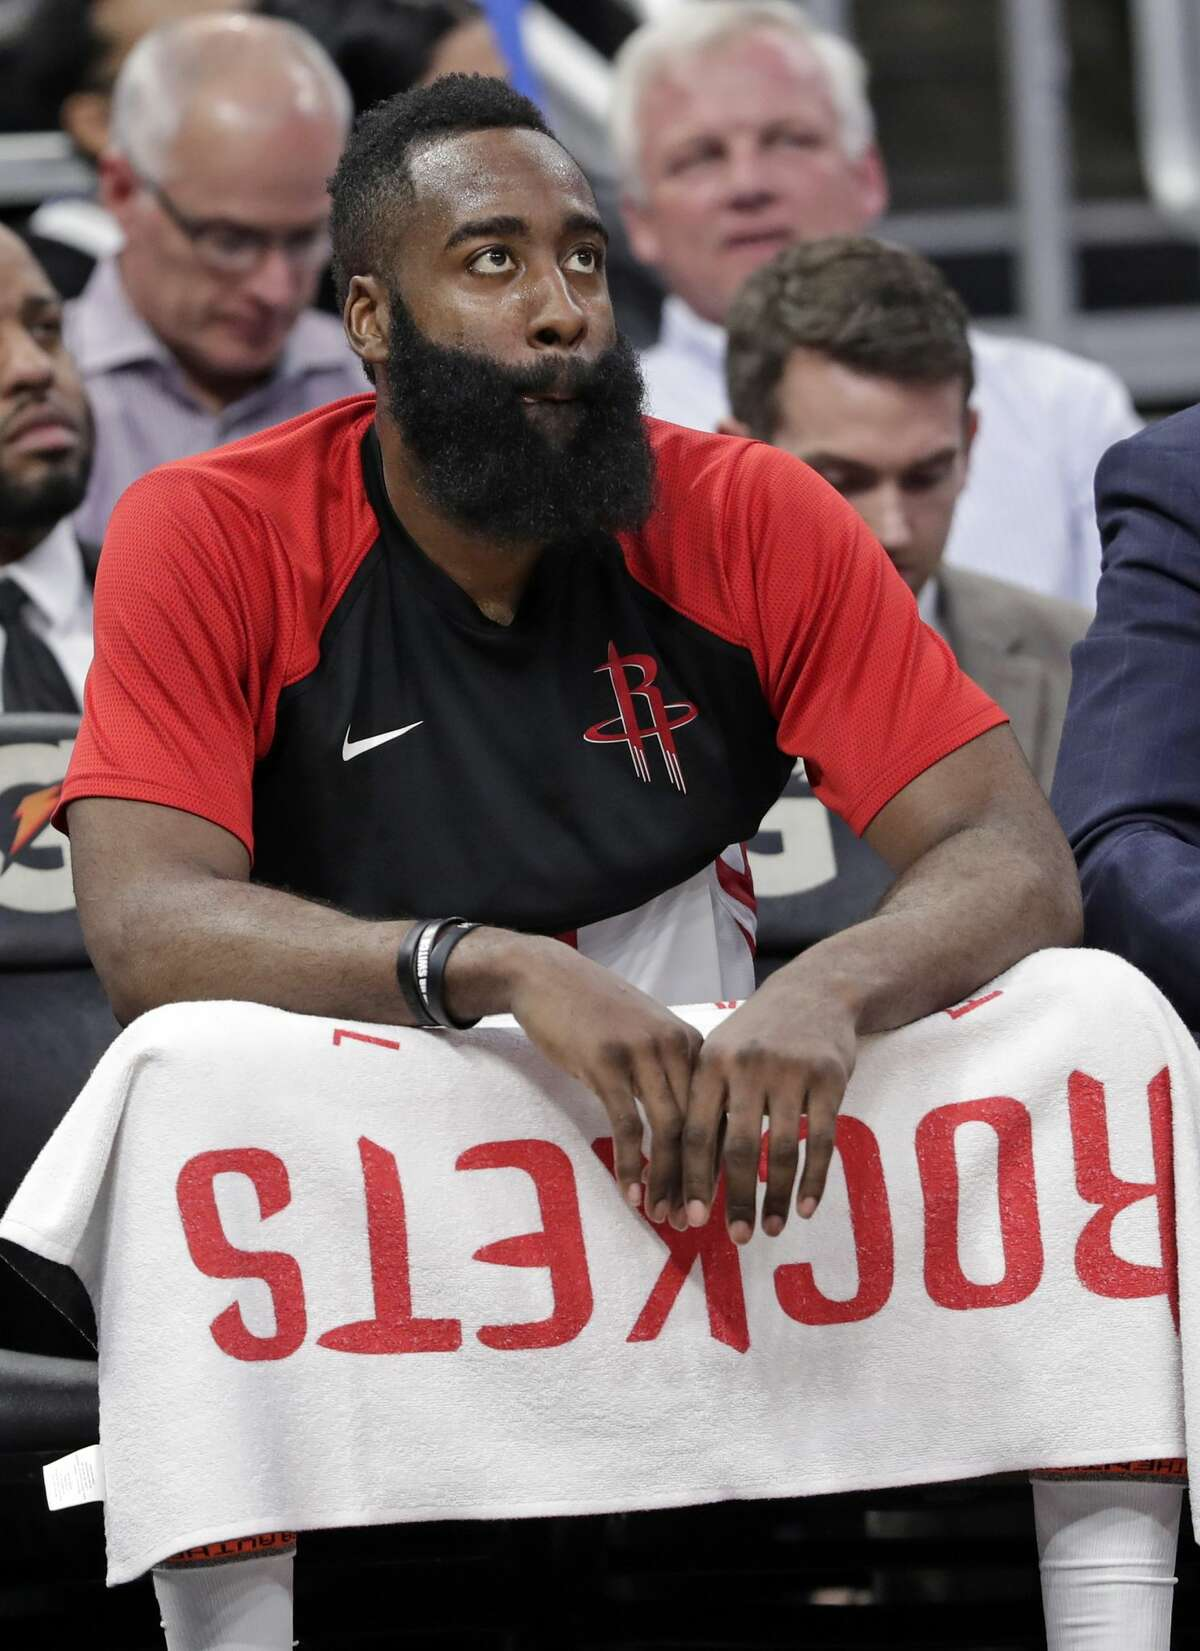 Houston Rockets' James Harden watches his teammates on the court against the Orlando Magic as he takes a breather on the bench during the second half of an NBA basketball game, Sunday, Jan. 13, 2019, in Orlando, Fla. (AP Photo/John Raoux)